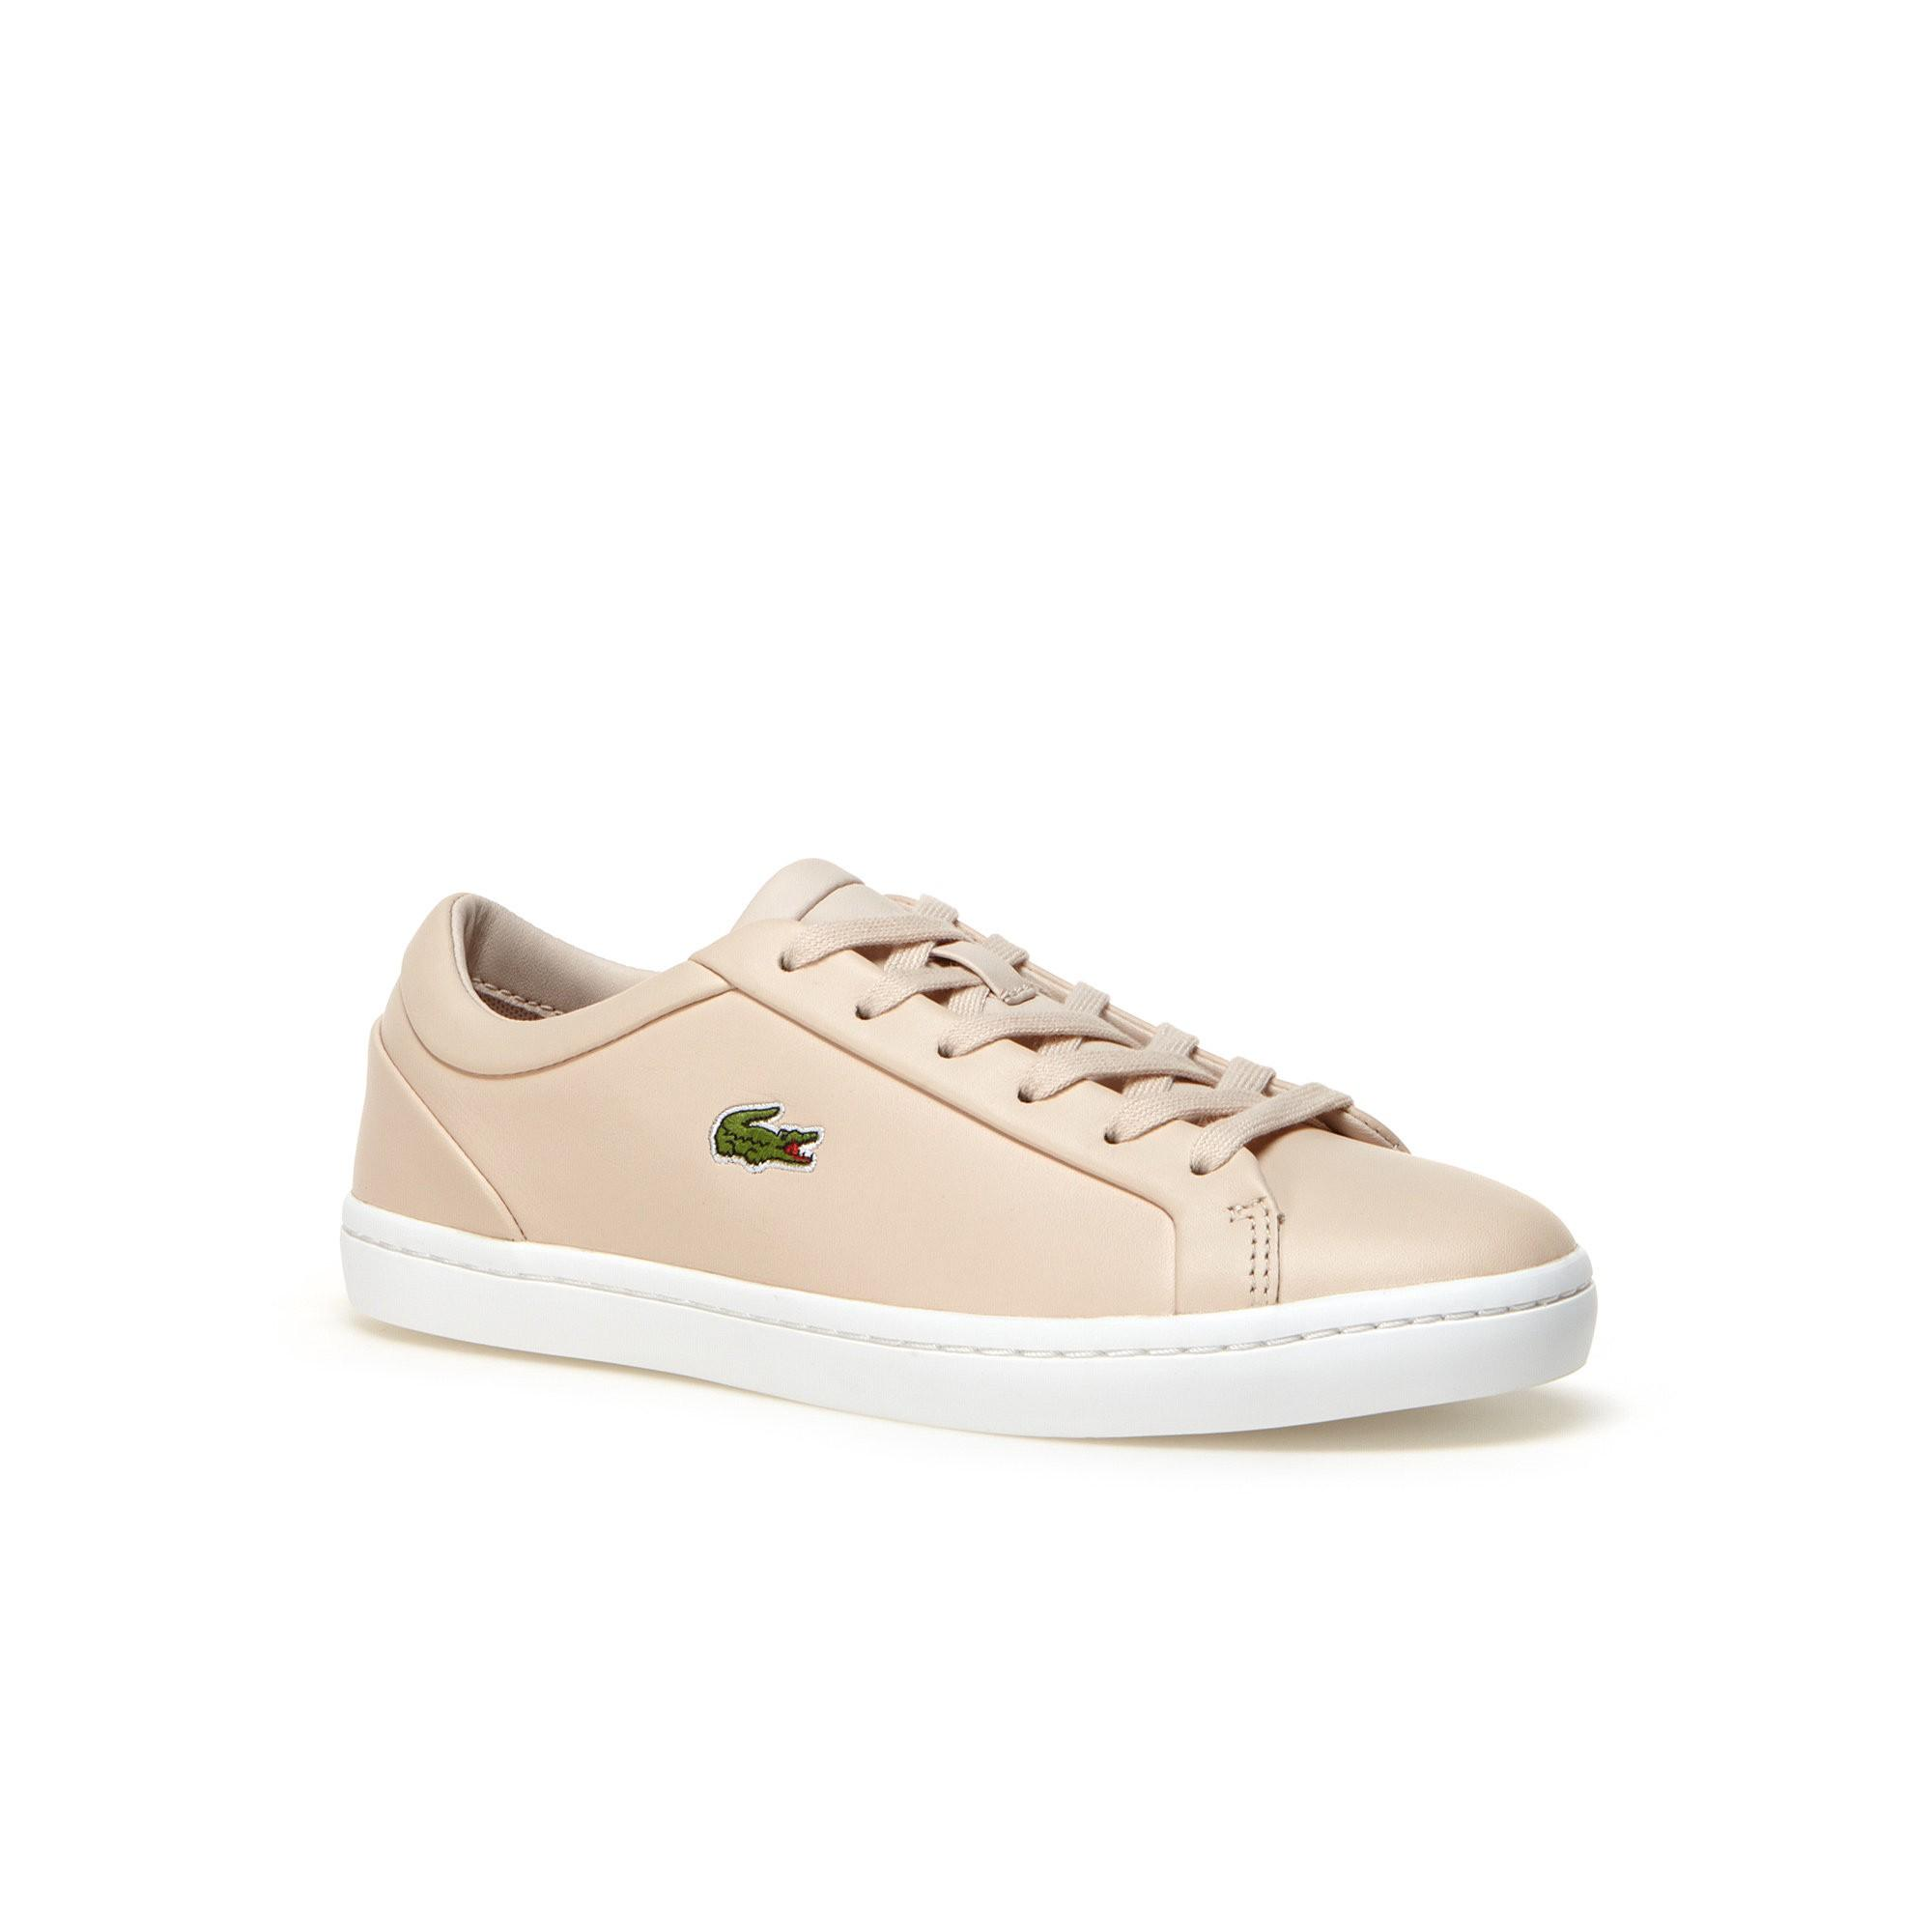 1d40ee6587e Lacoste Women s Straightset Lace Leather Sneakers In Light Pink ...